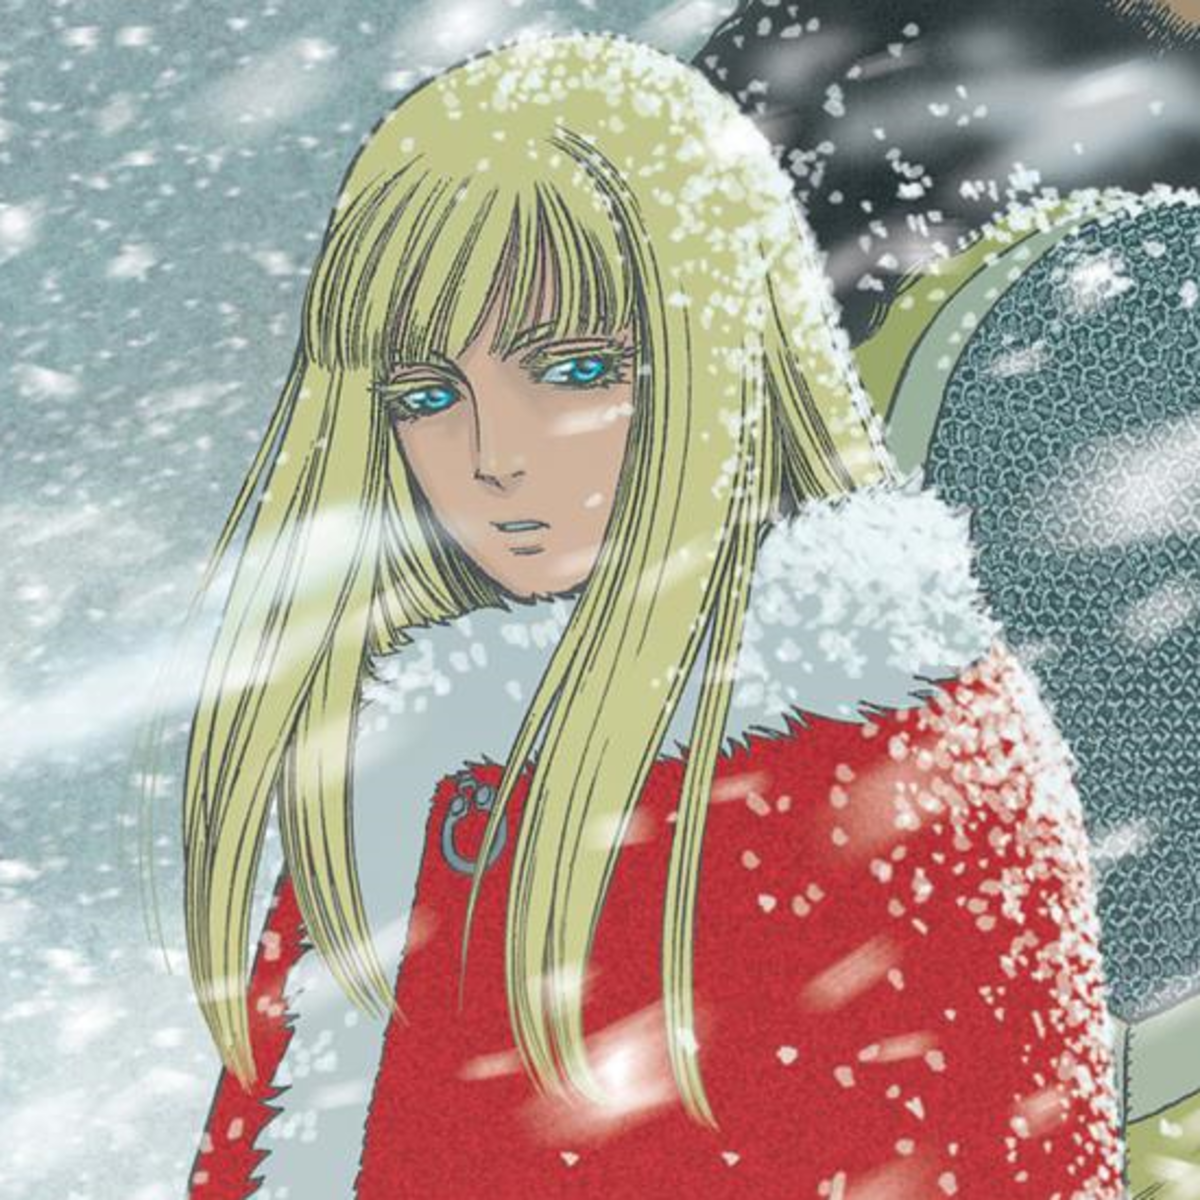 Canute from Vinland Saga